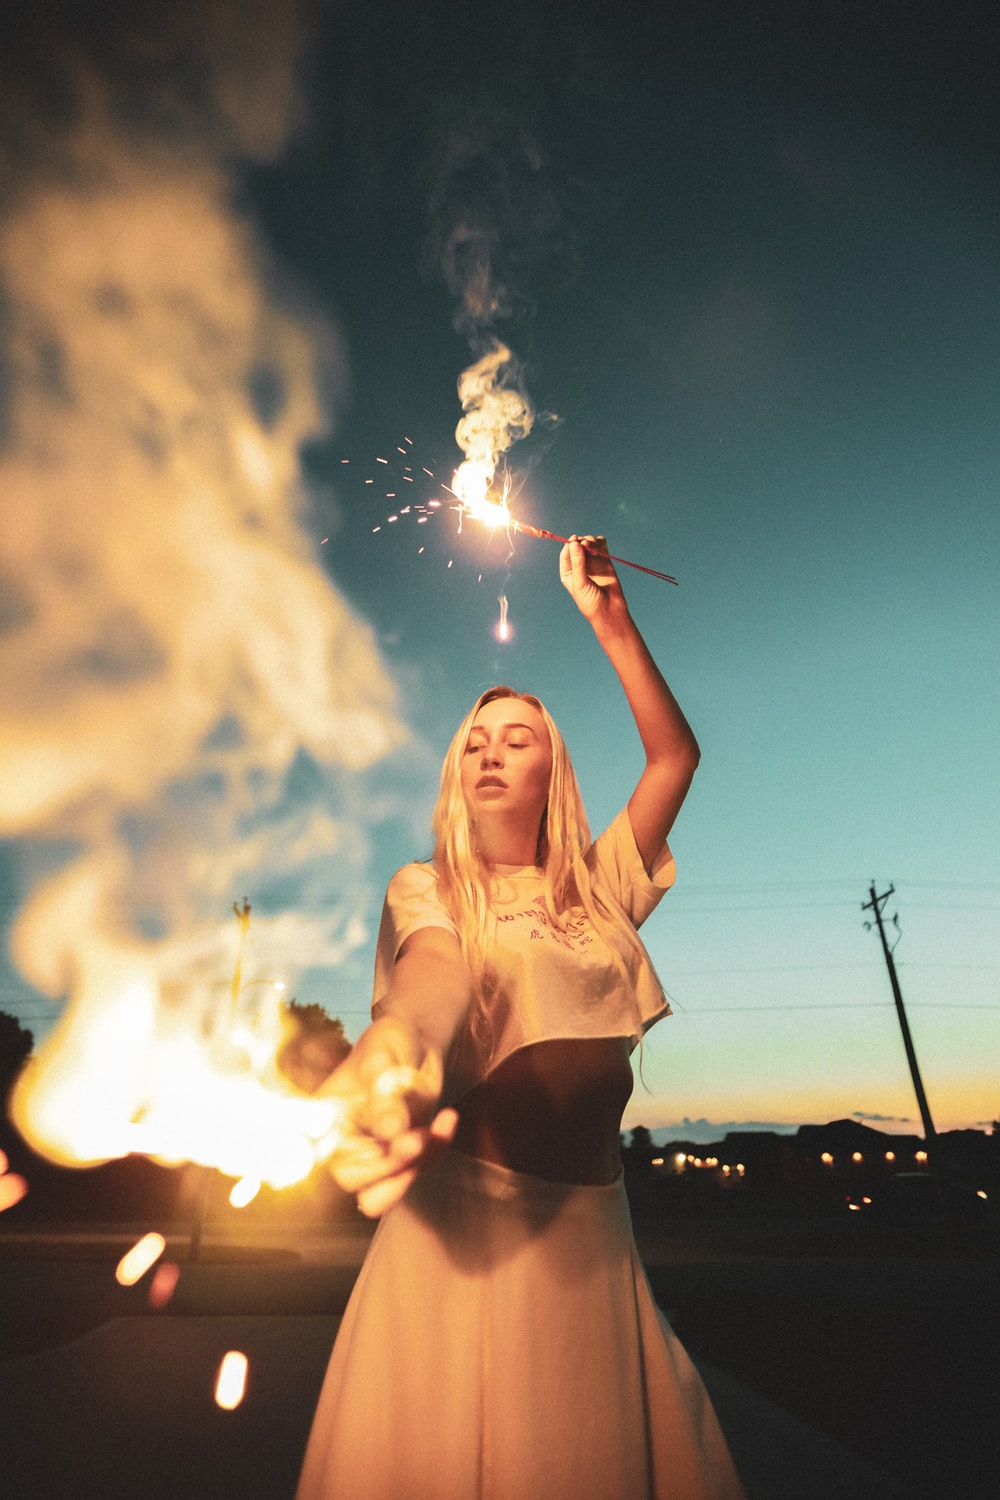 woman in white crop top holding sparkler